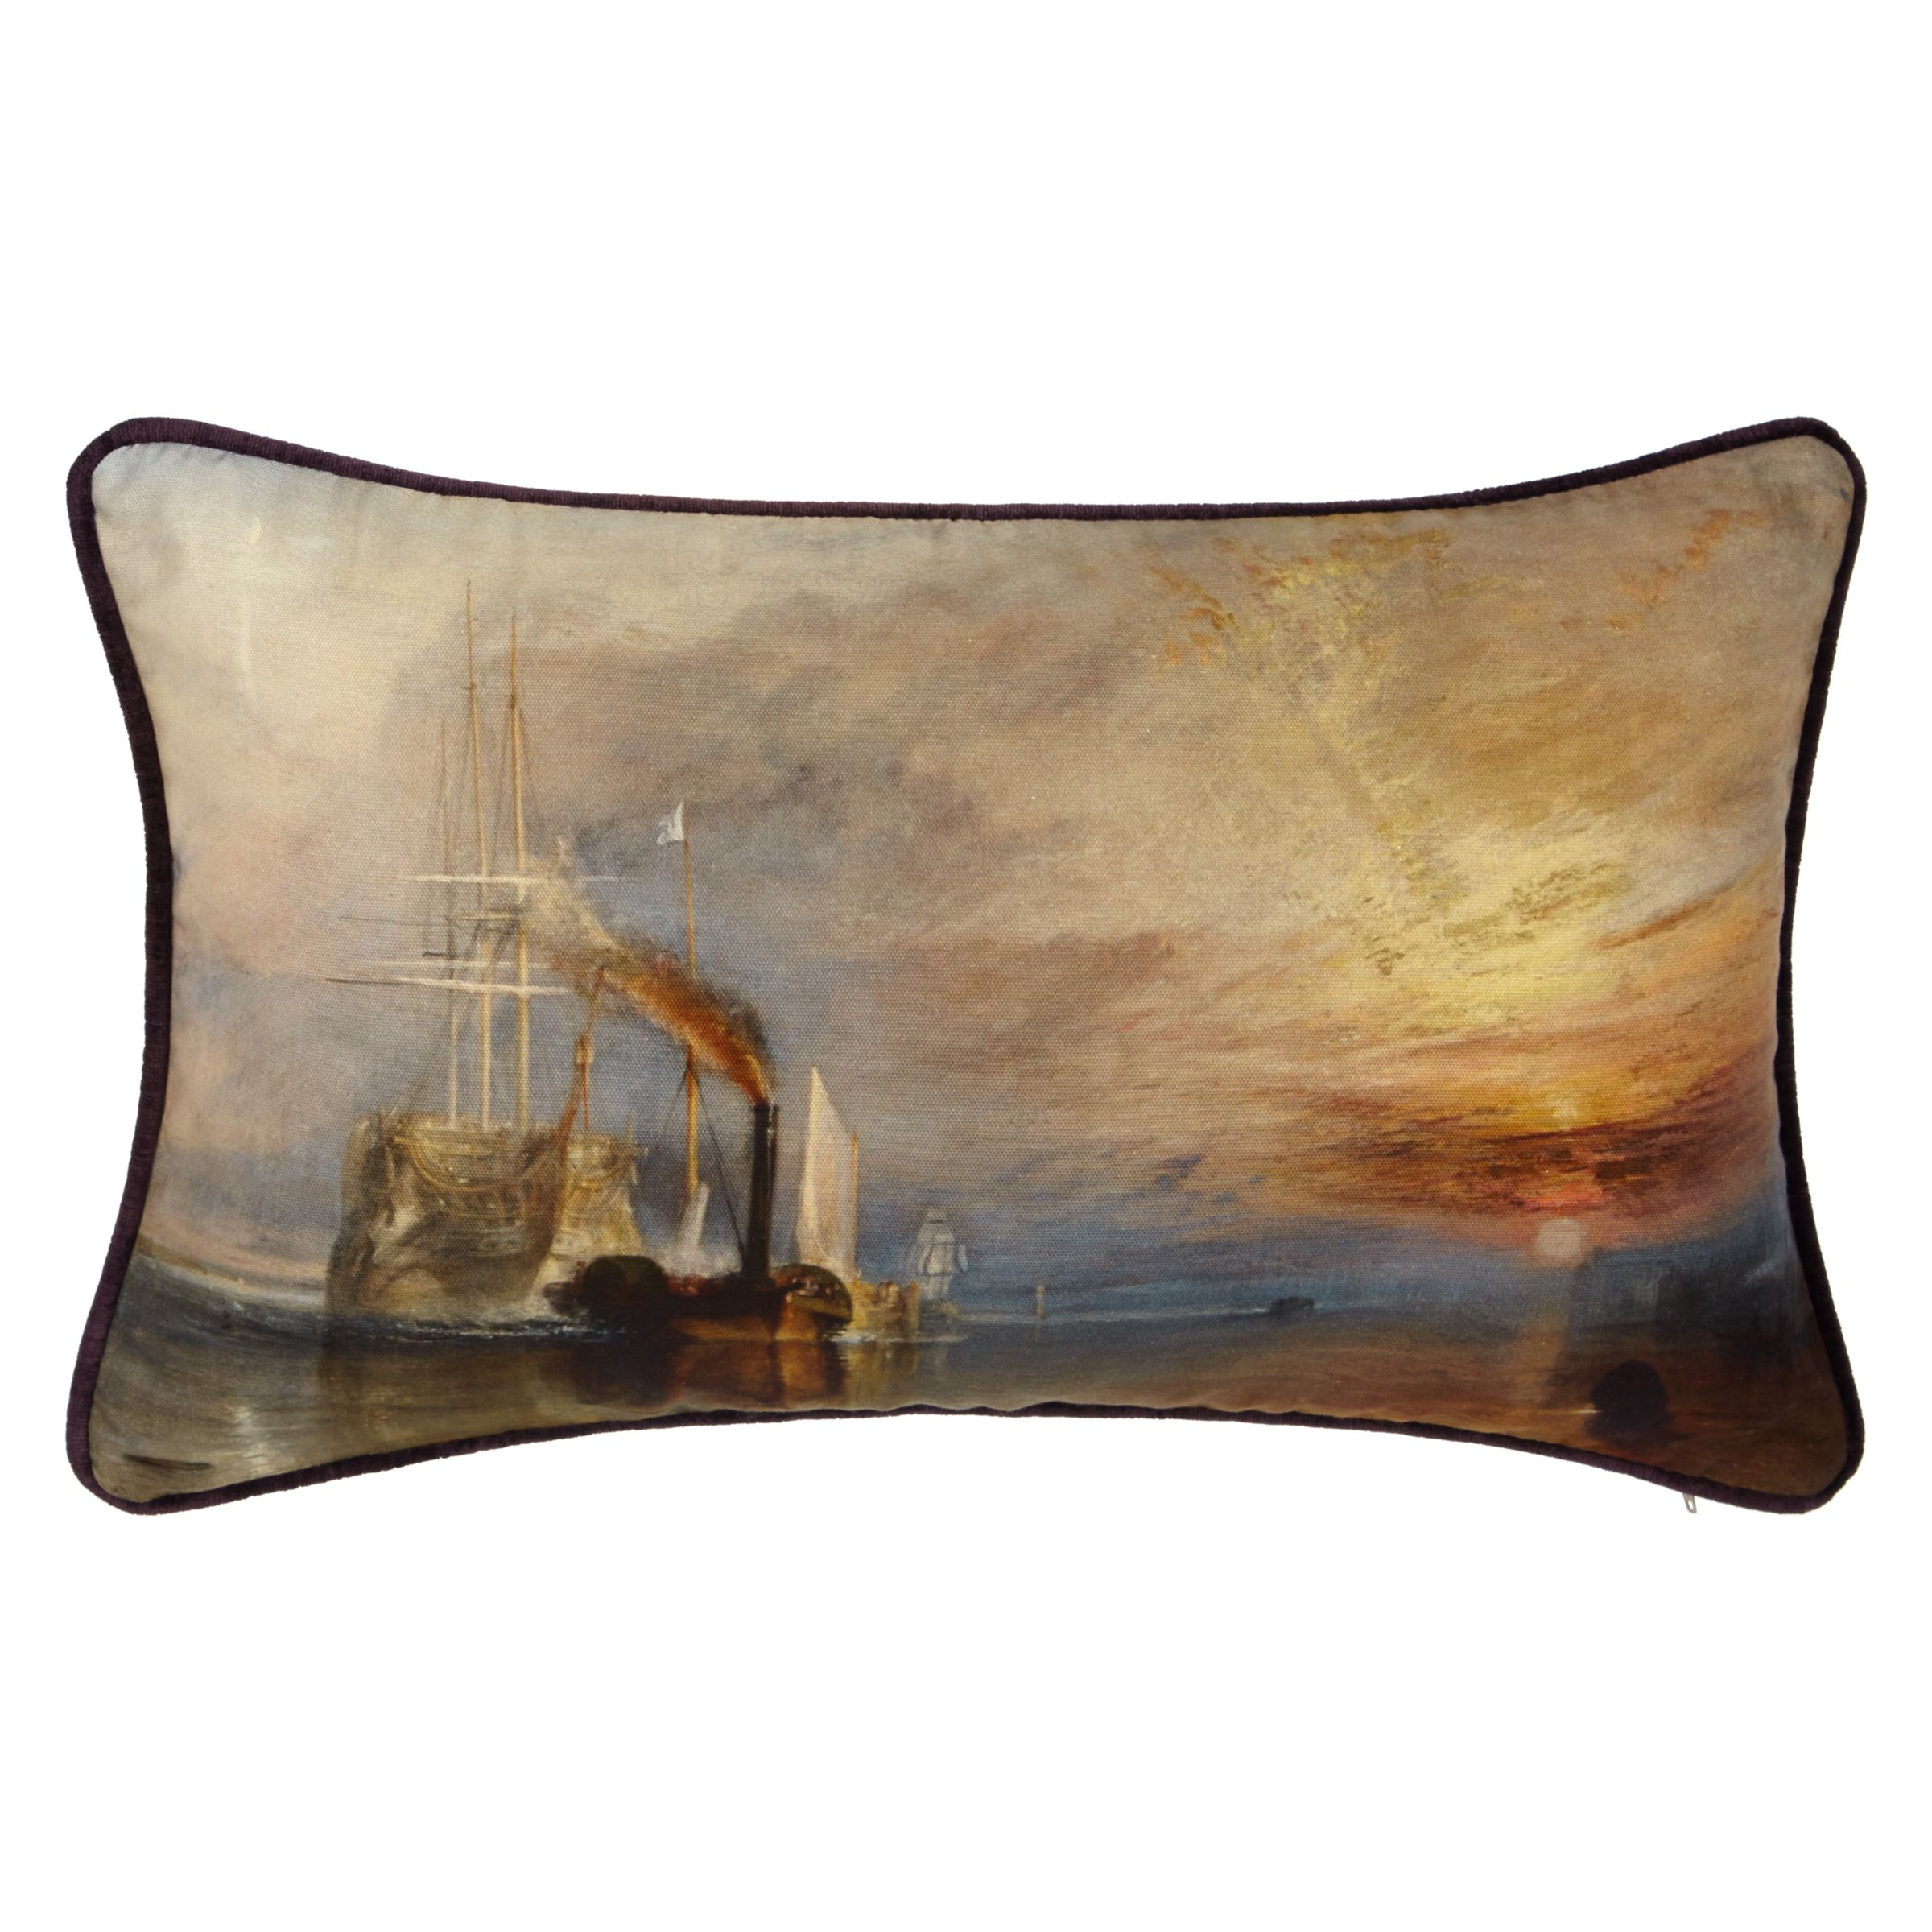 Andrew Martin Andrew Martin National Gallery Turner's The Fighting Temeraire Cushion